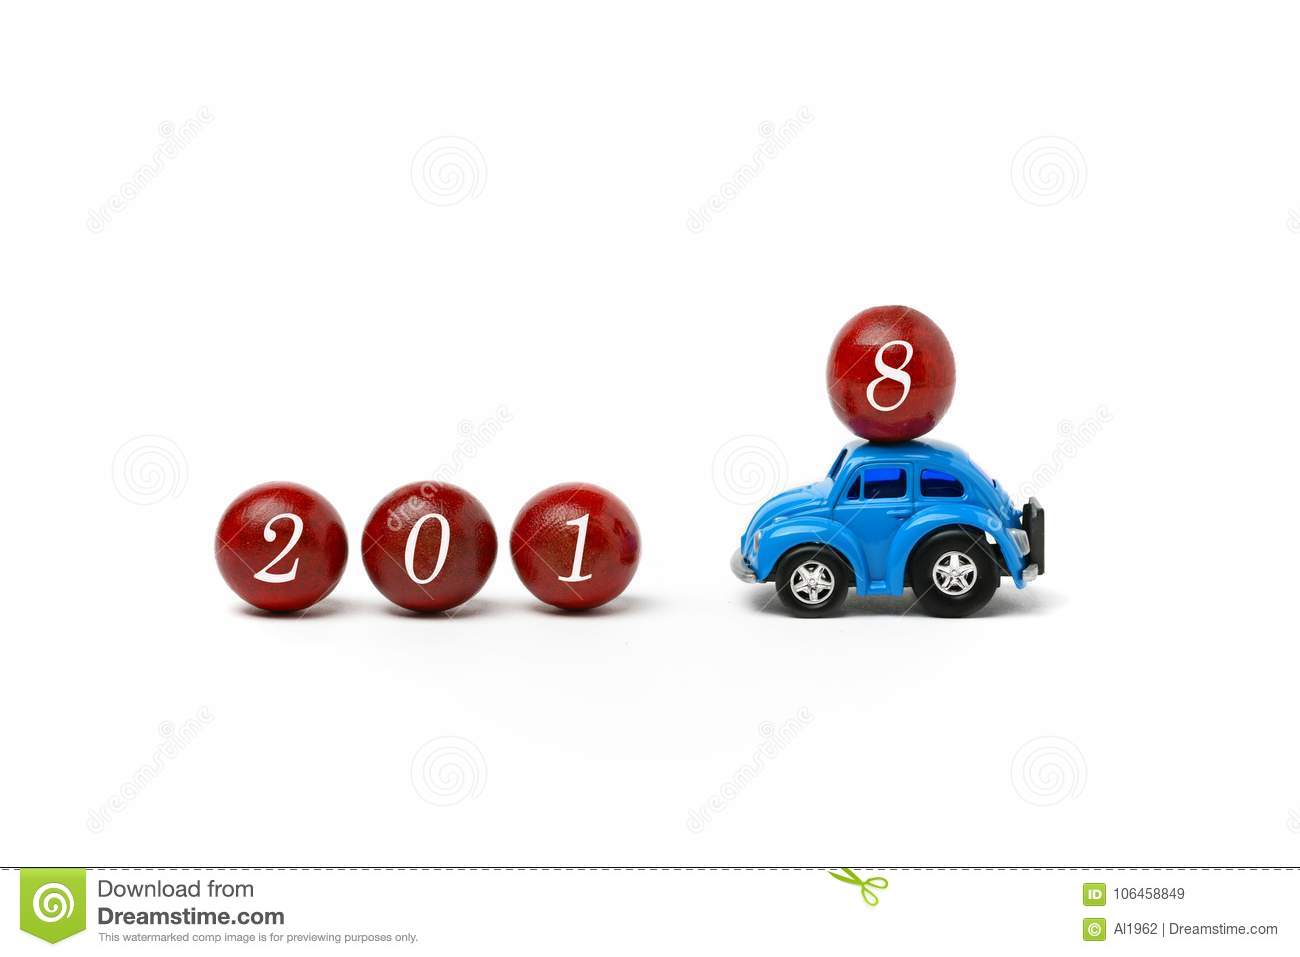 New Year 2018 is coming - Happy New Year 2018 - car that brings